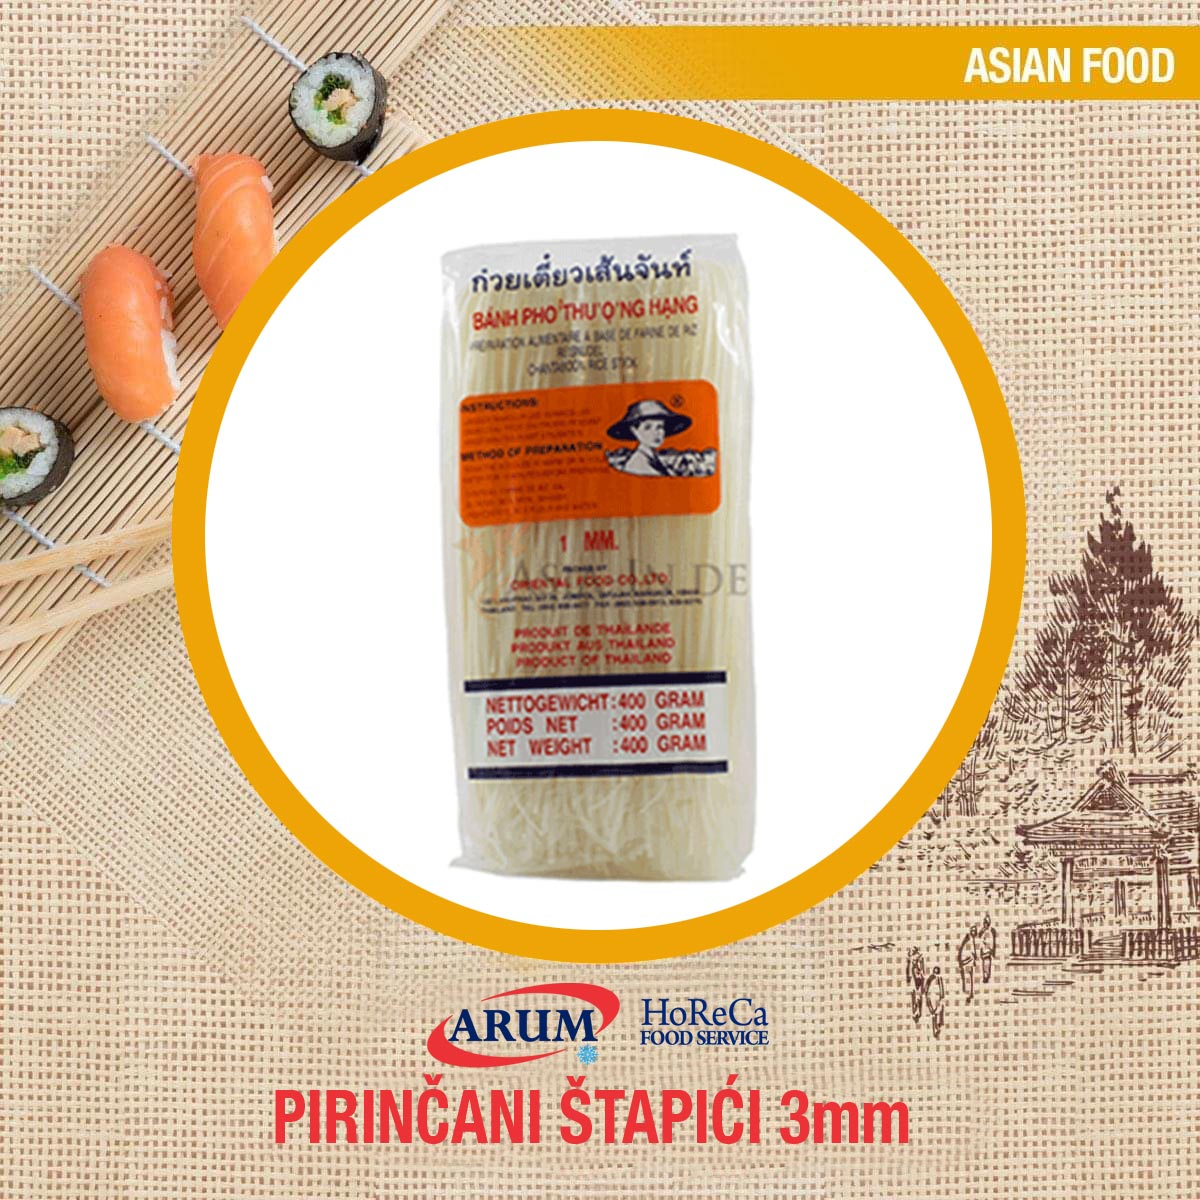 Pirincani stapici 3 mm 400 gr